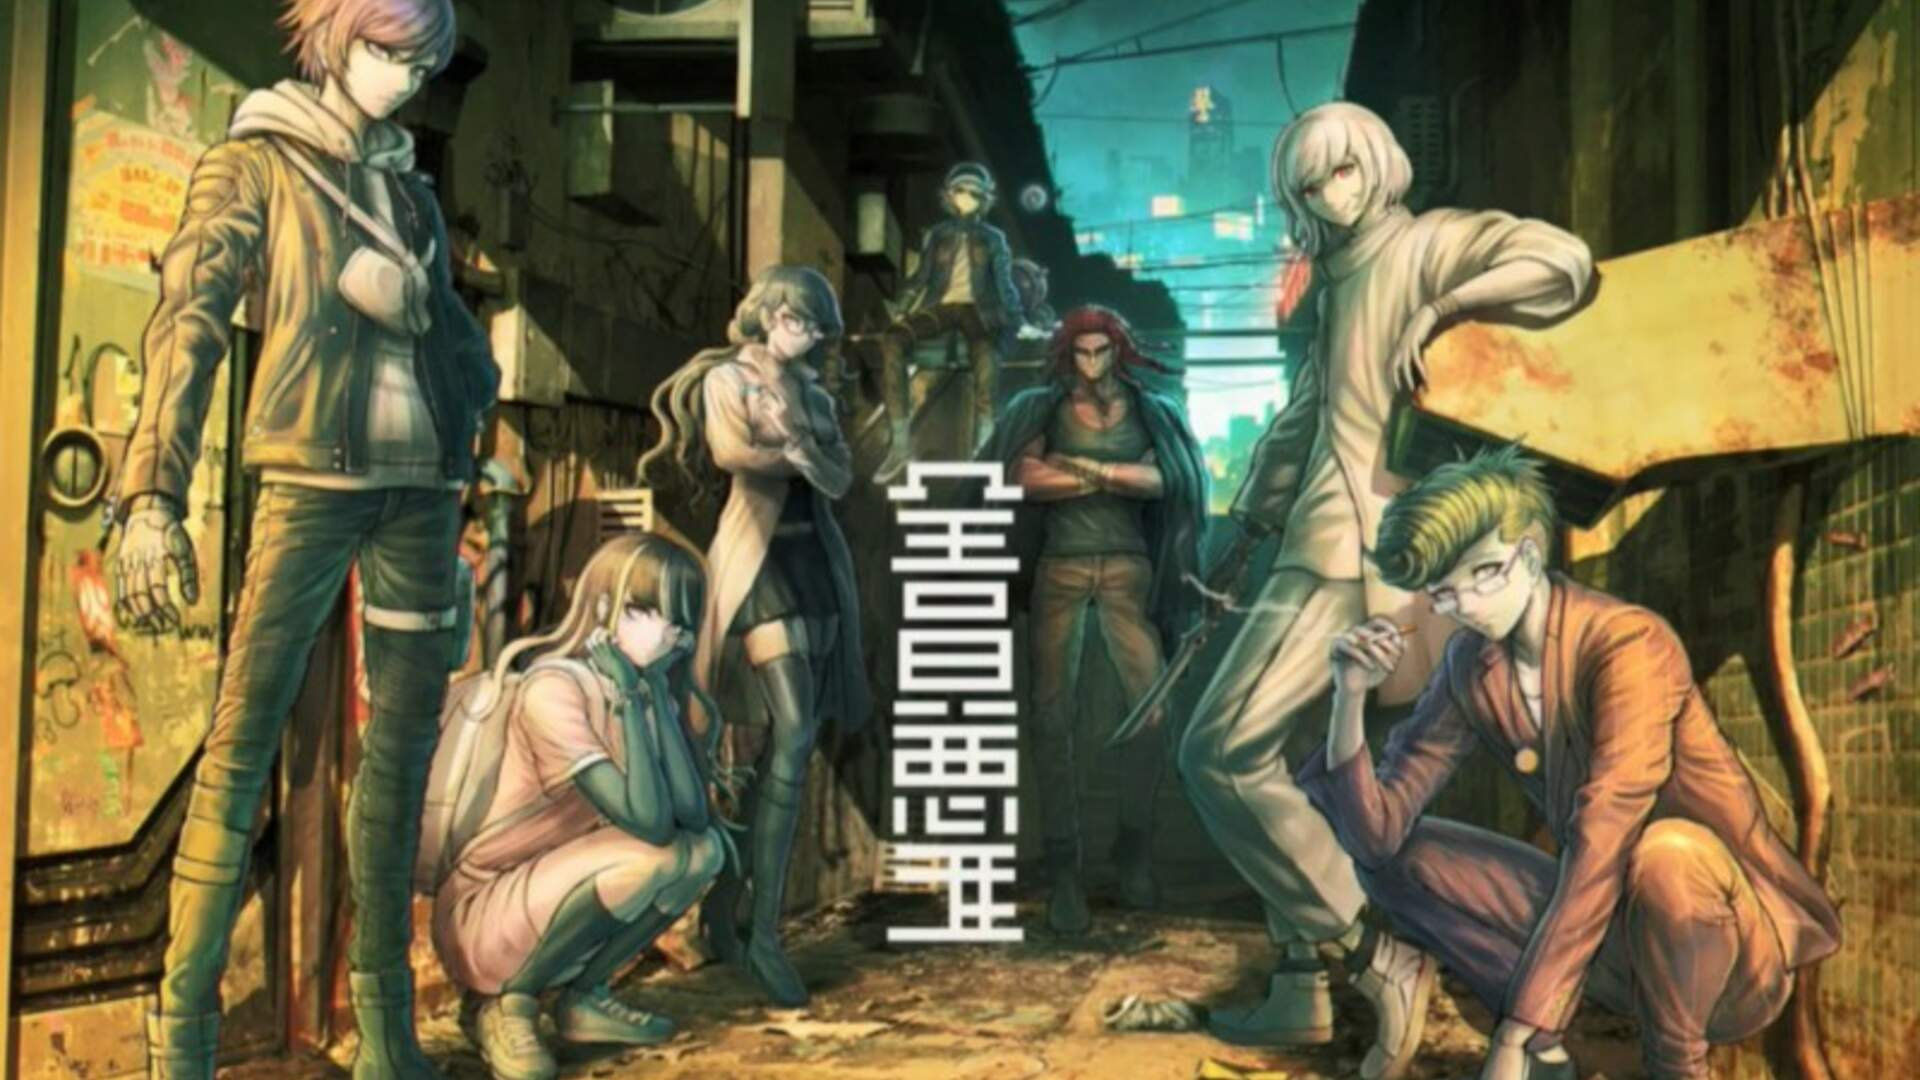 The Creators of Danganronpa and Zero Escape Unite to Form a New Studio, Announce Four Projects